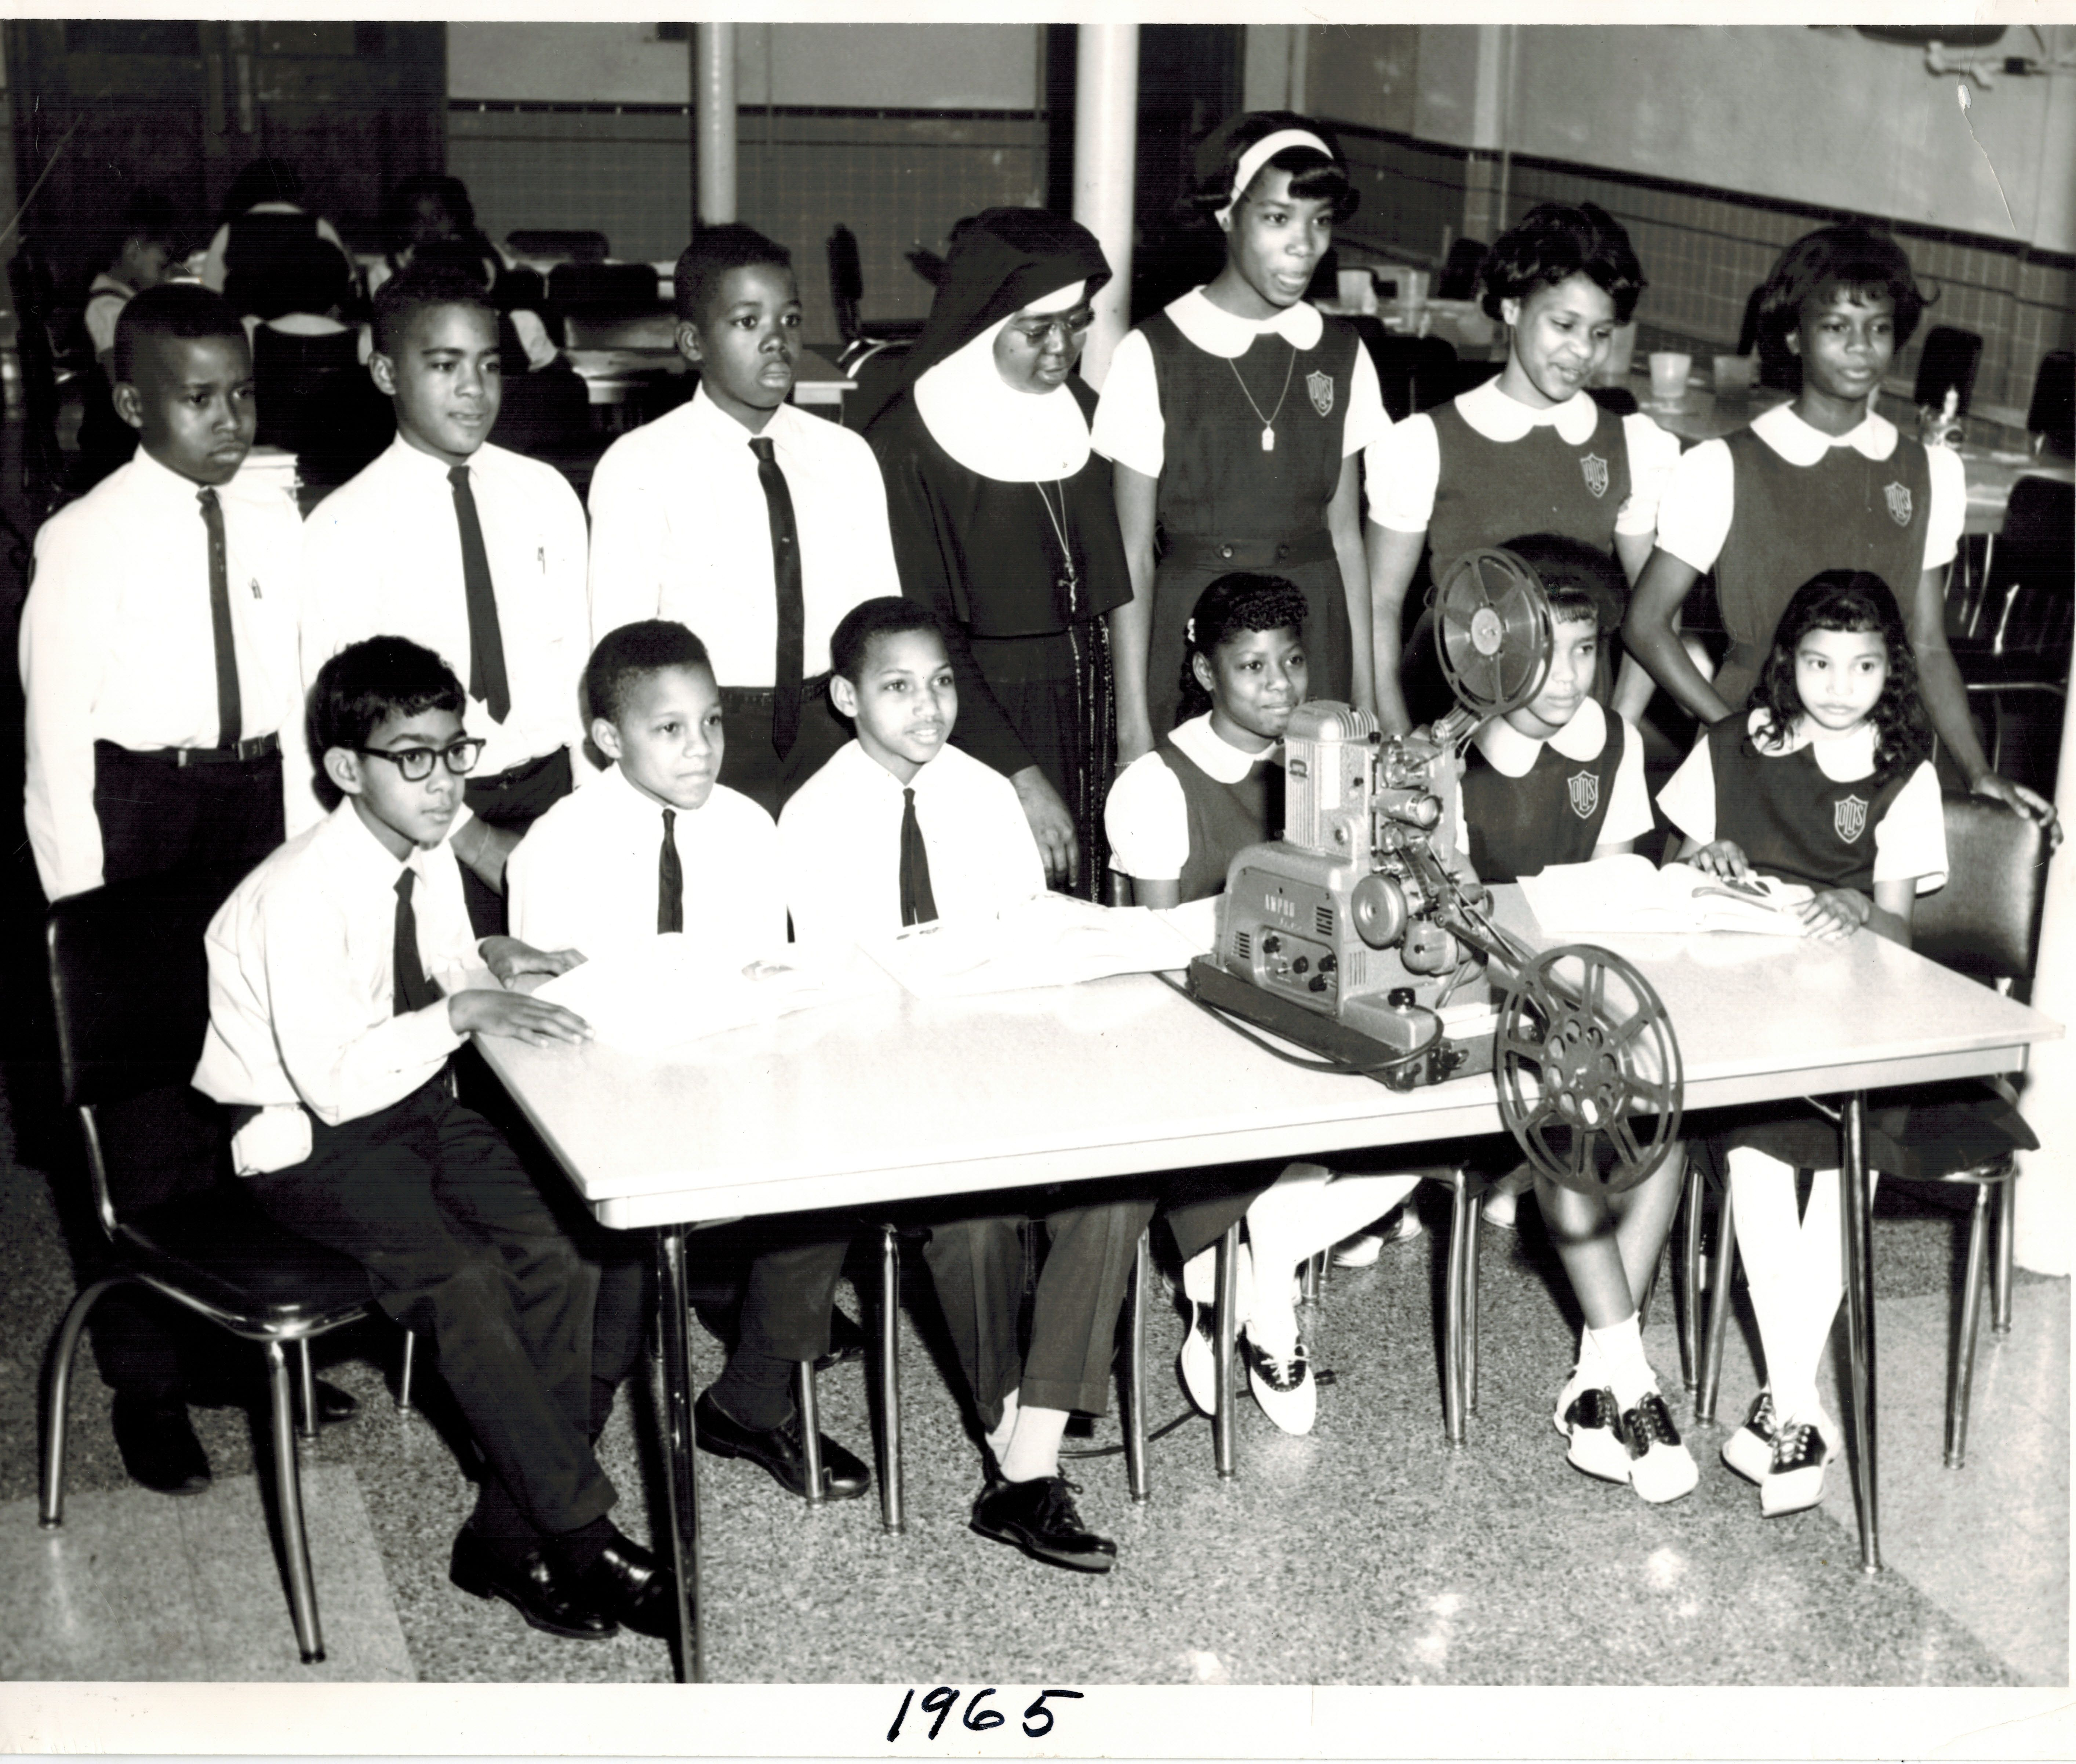 1965 Sister Angelica Wilson shows a film in the cafeteria